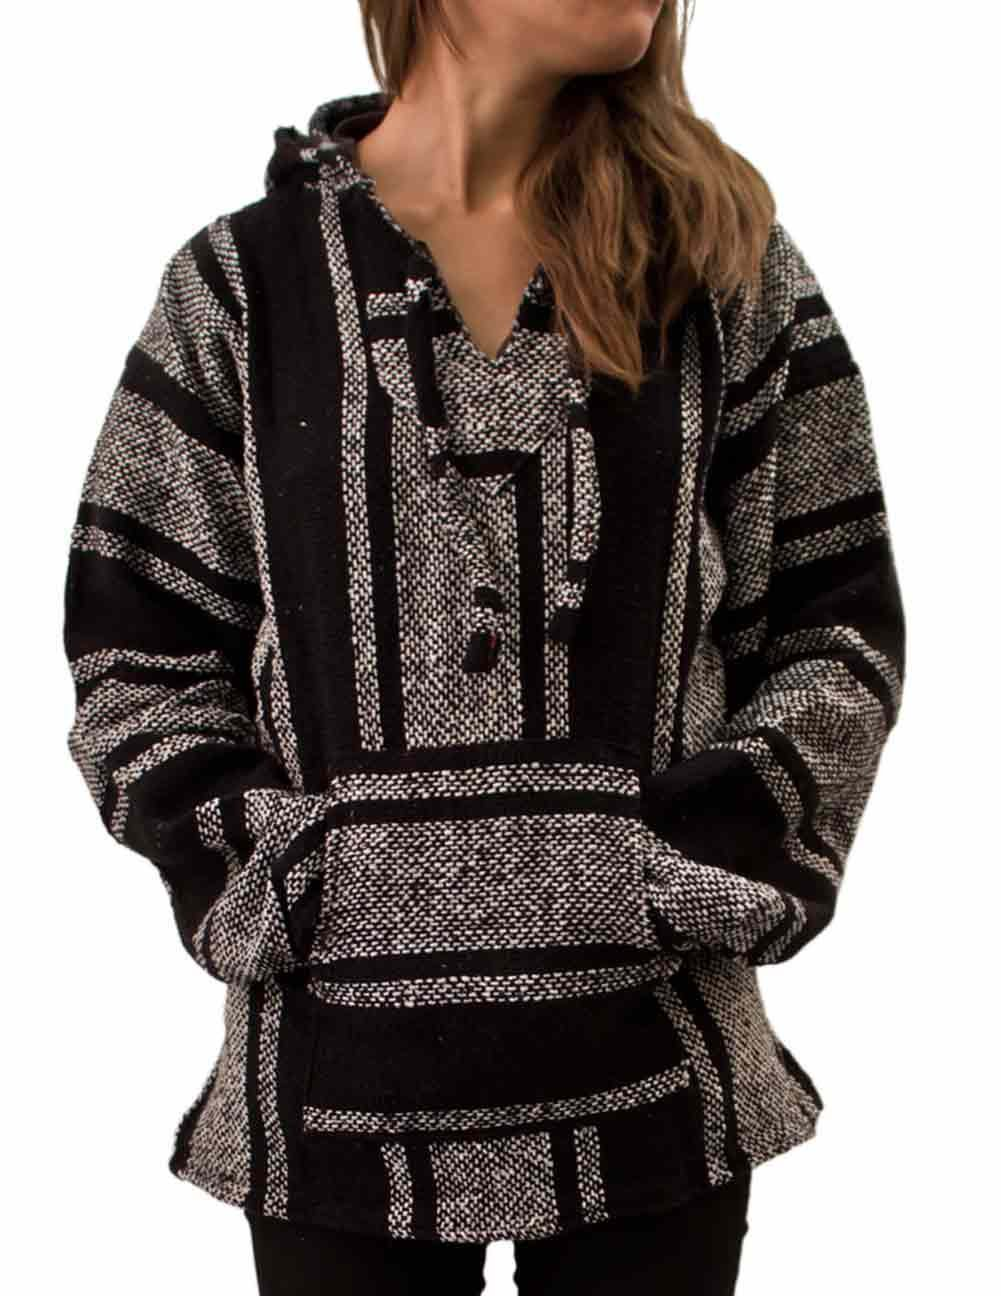 Cleverbrand Unisex Mexican Jerga Hoodie - X-Large, Black